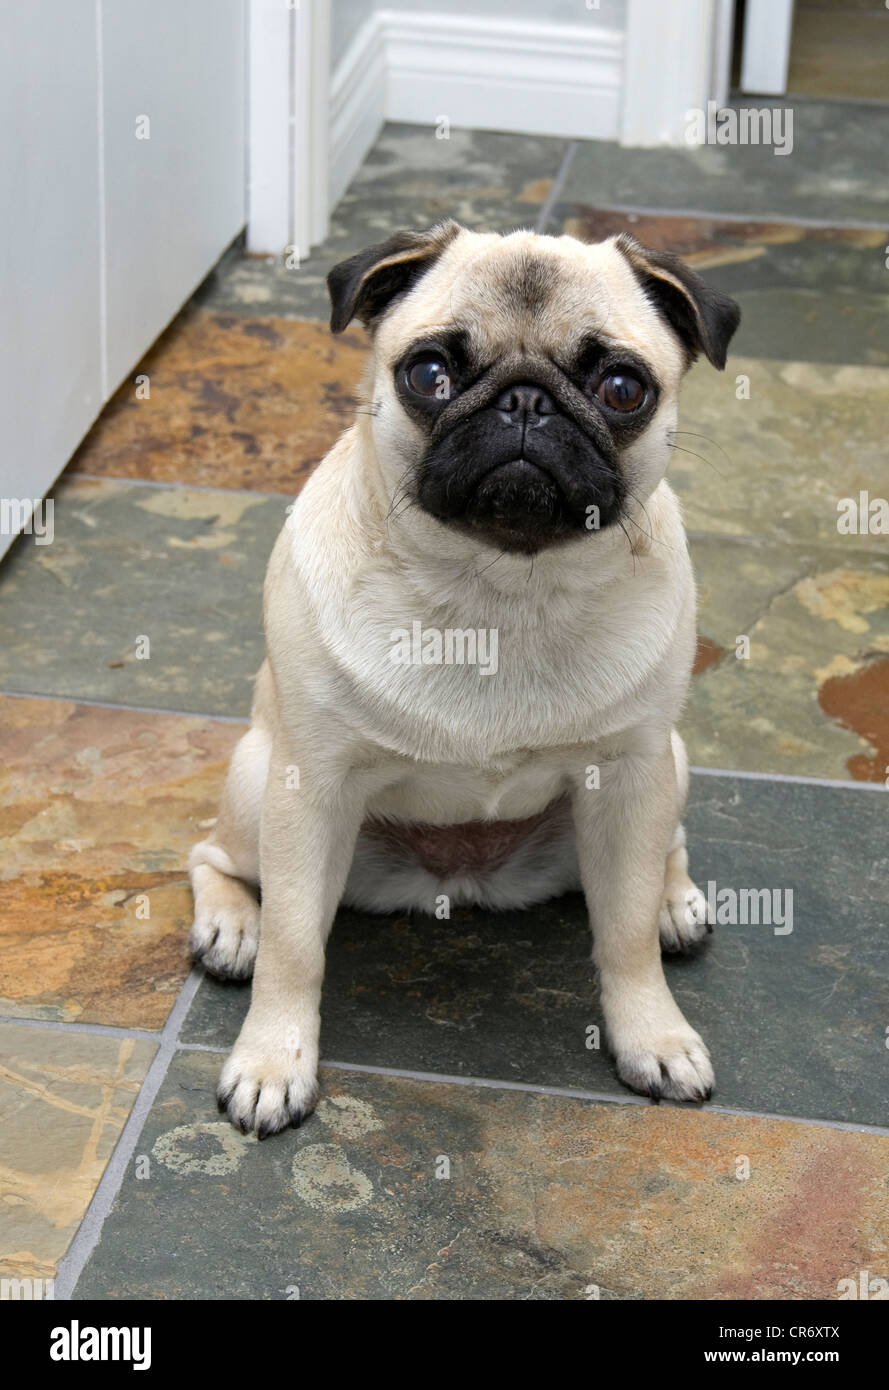 A one year old fawn coloured Chinese pug dog sitting on slate tile. - Stock Image